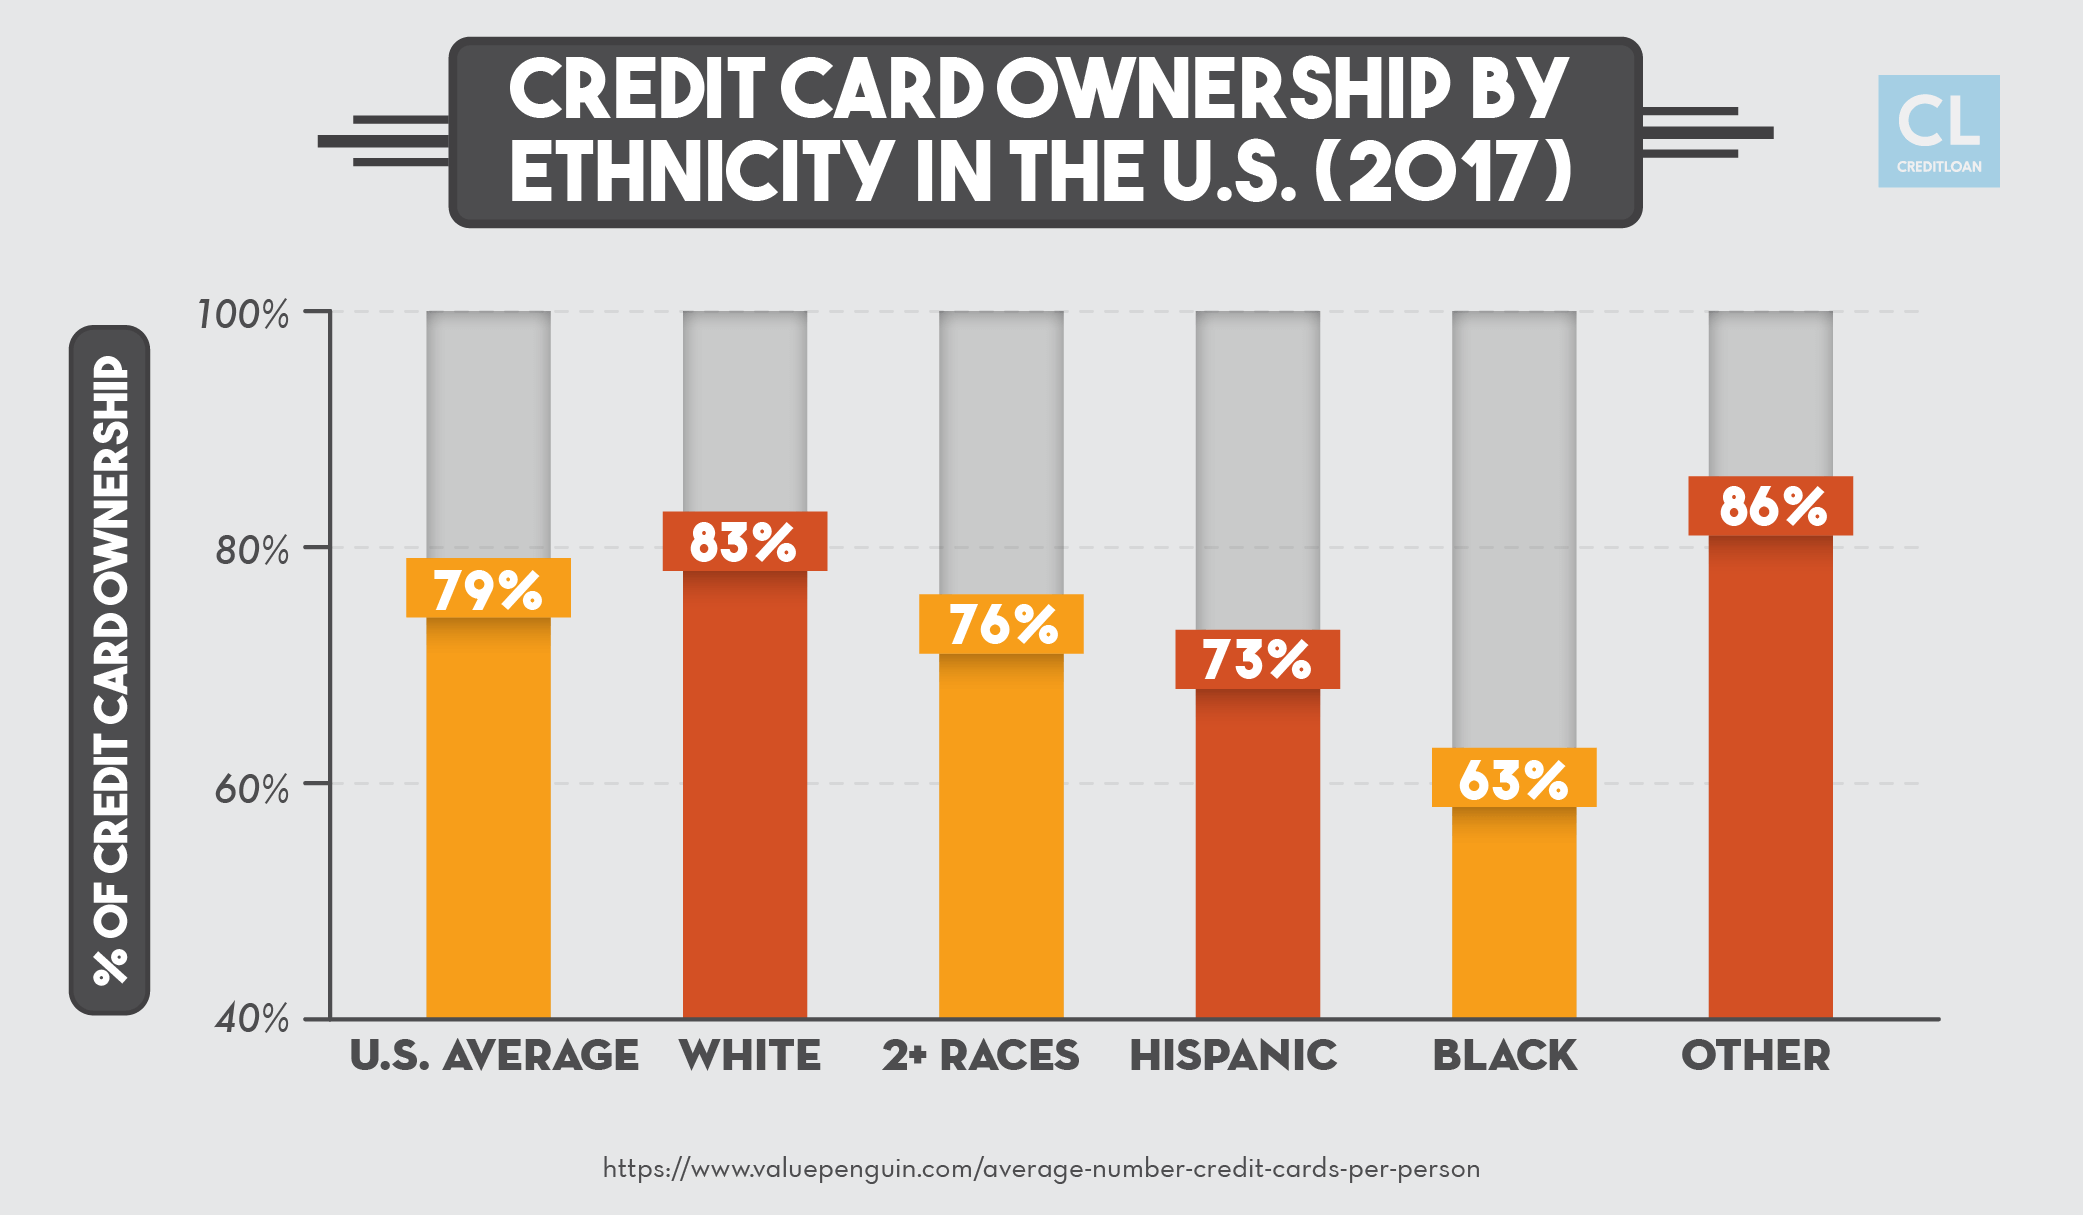 Credit Card Ownership by Ethnicity in the U.S.